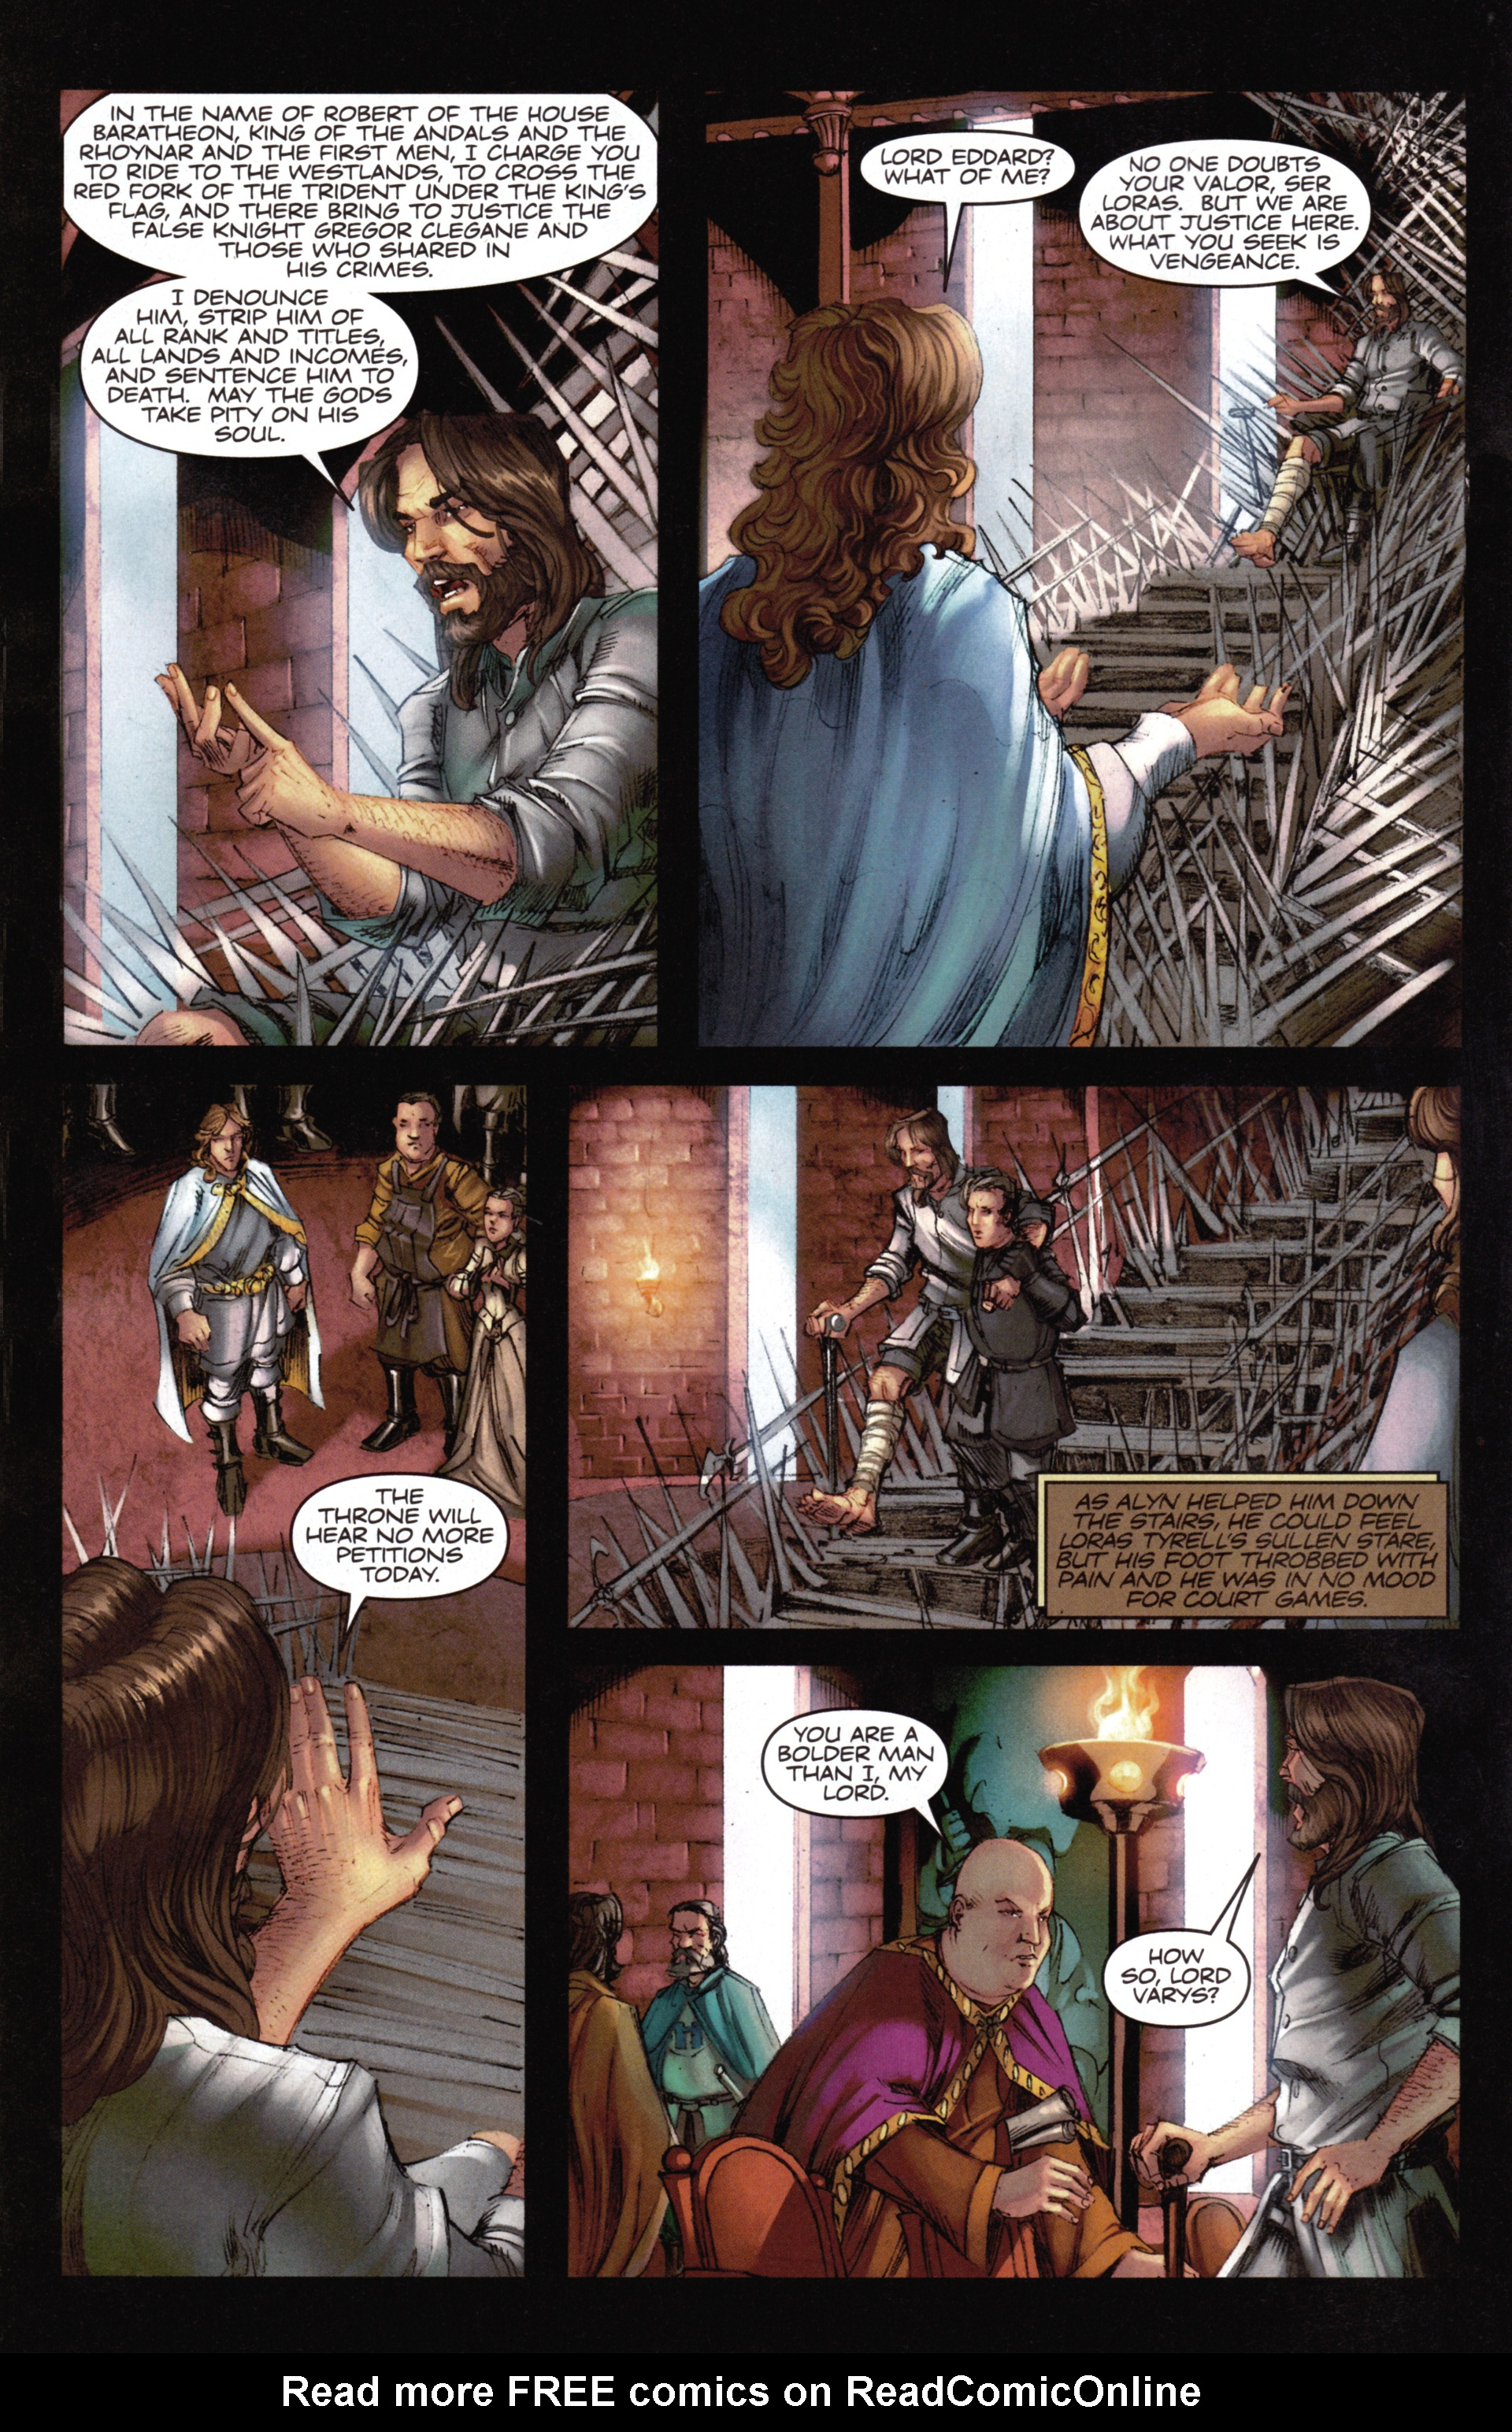 Read online A Game Of Thrones comic -  Issue #14 - 8